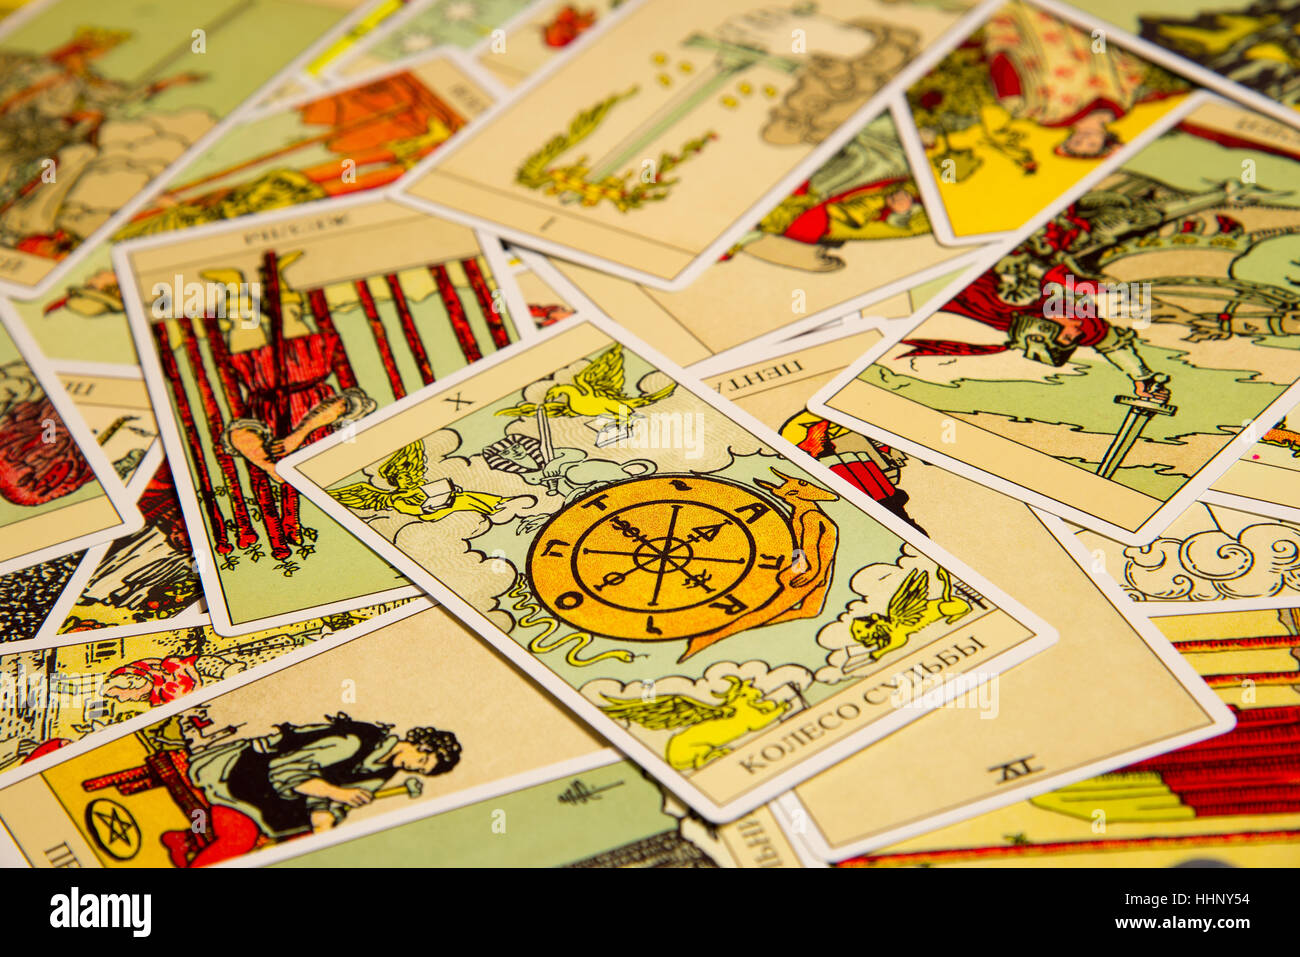 Tarot card Wheel of Fortune. Stock Photo